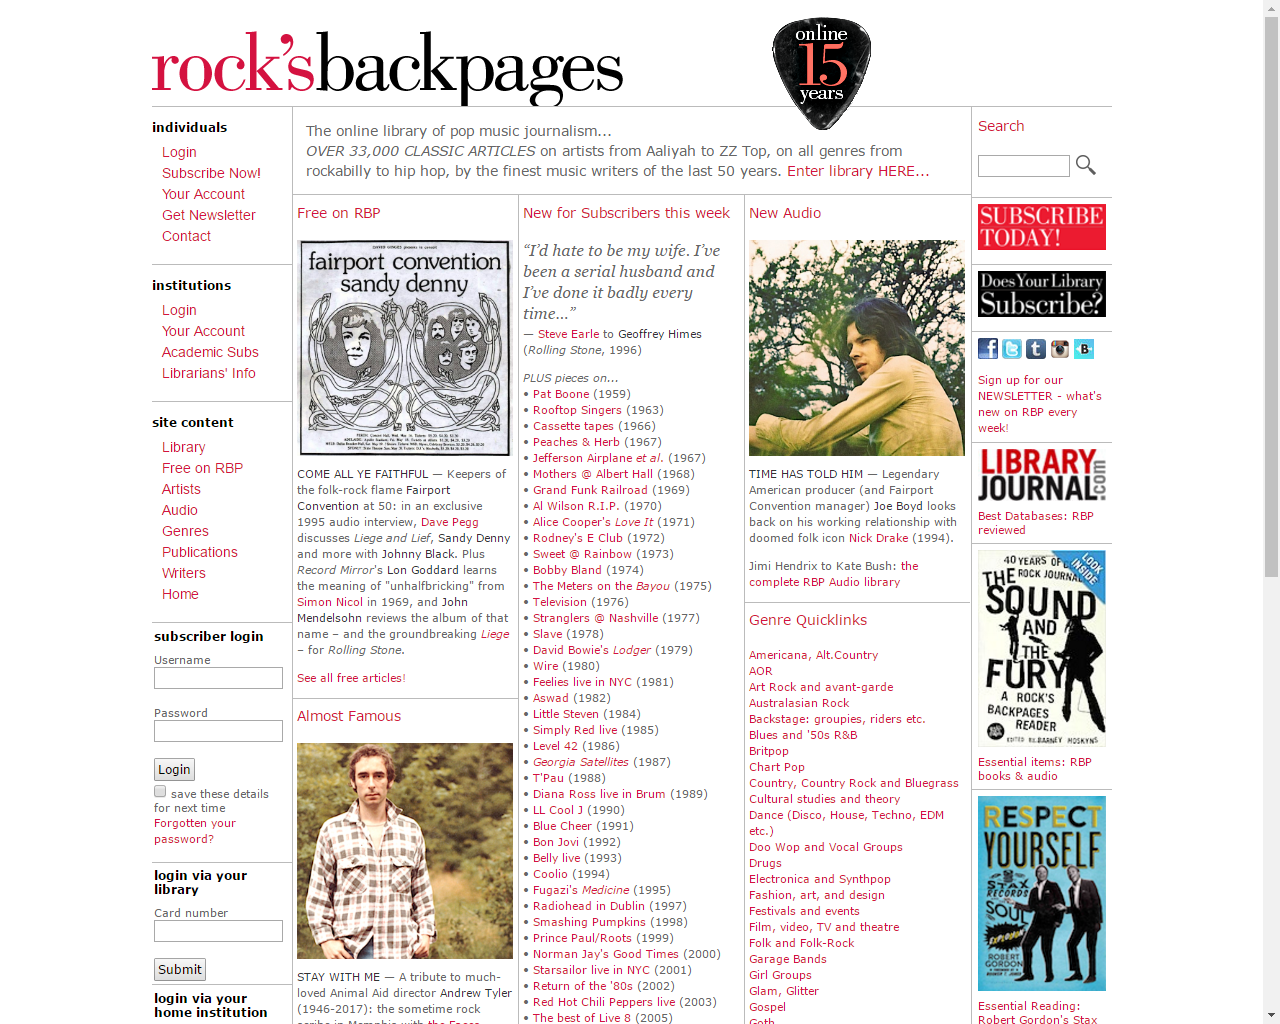 Backpages